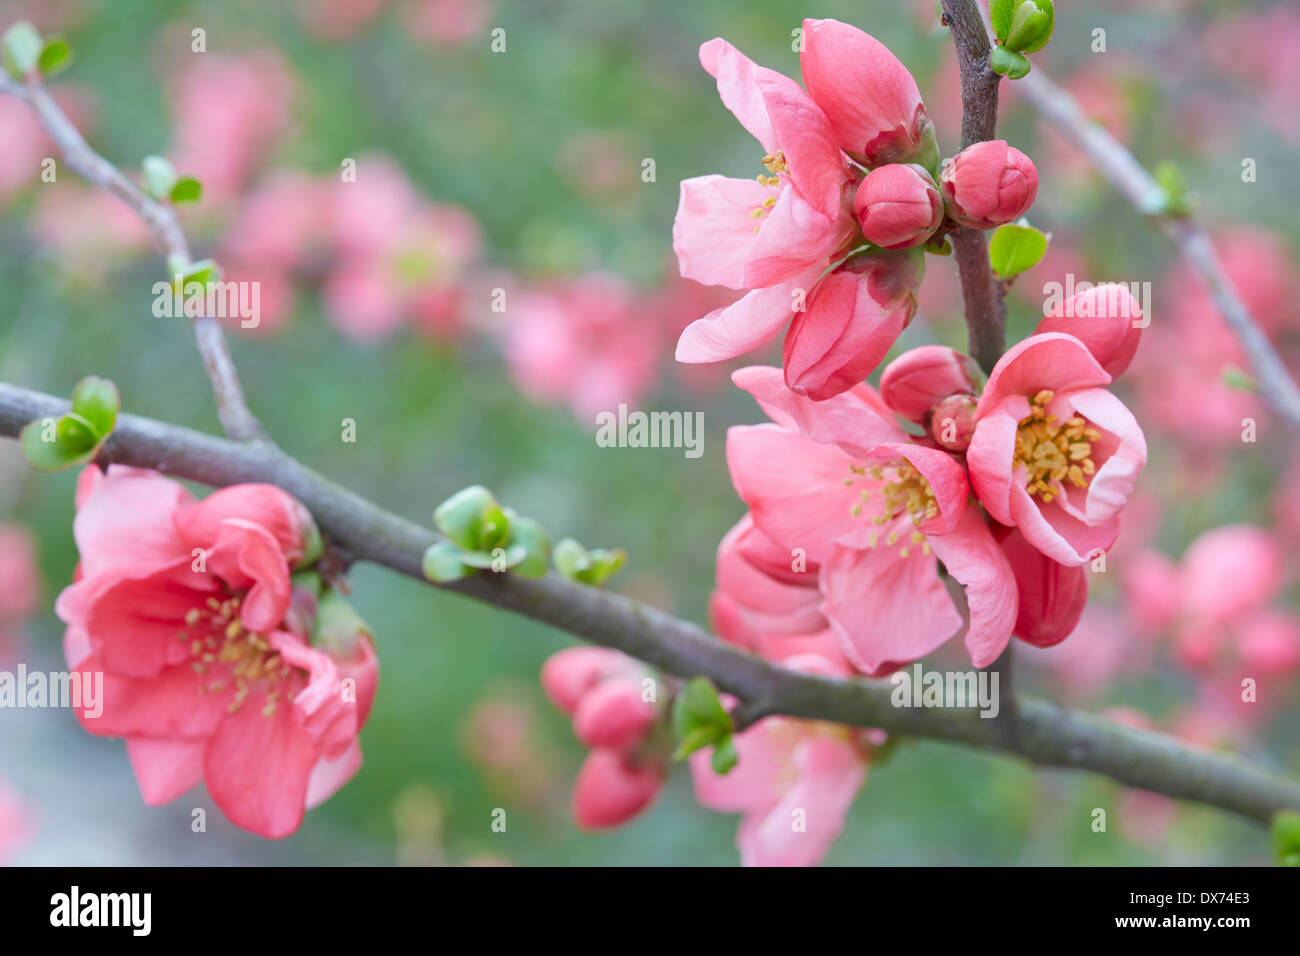 Spring Flowers On Twigs Pink Blossom And Buds Stock Photo 67769355